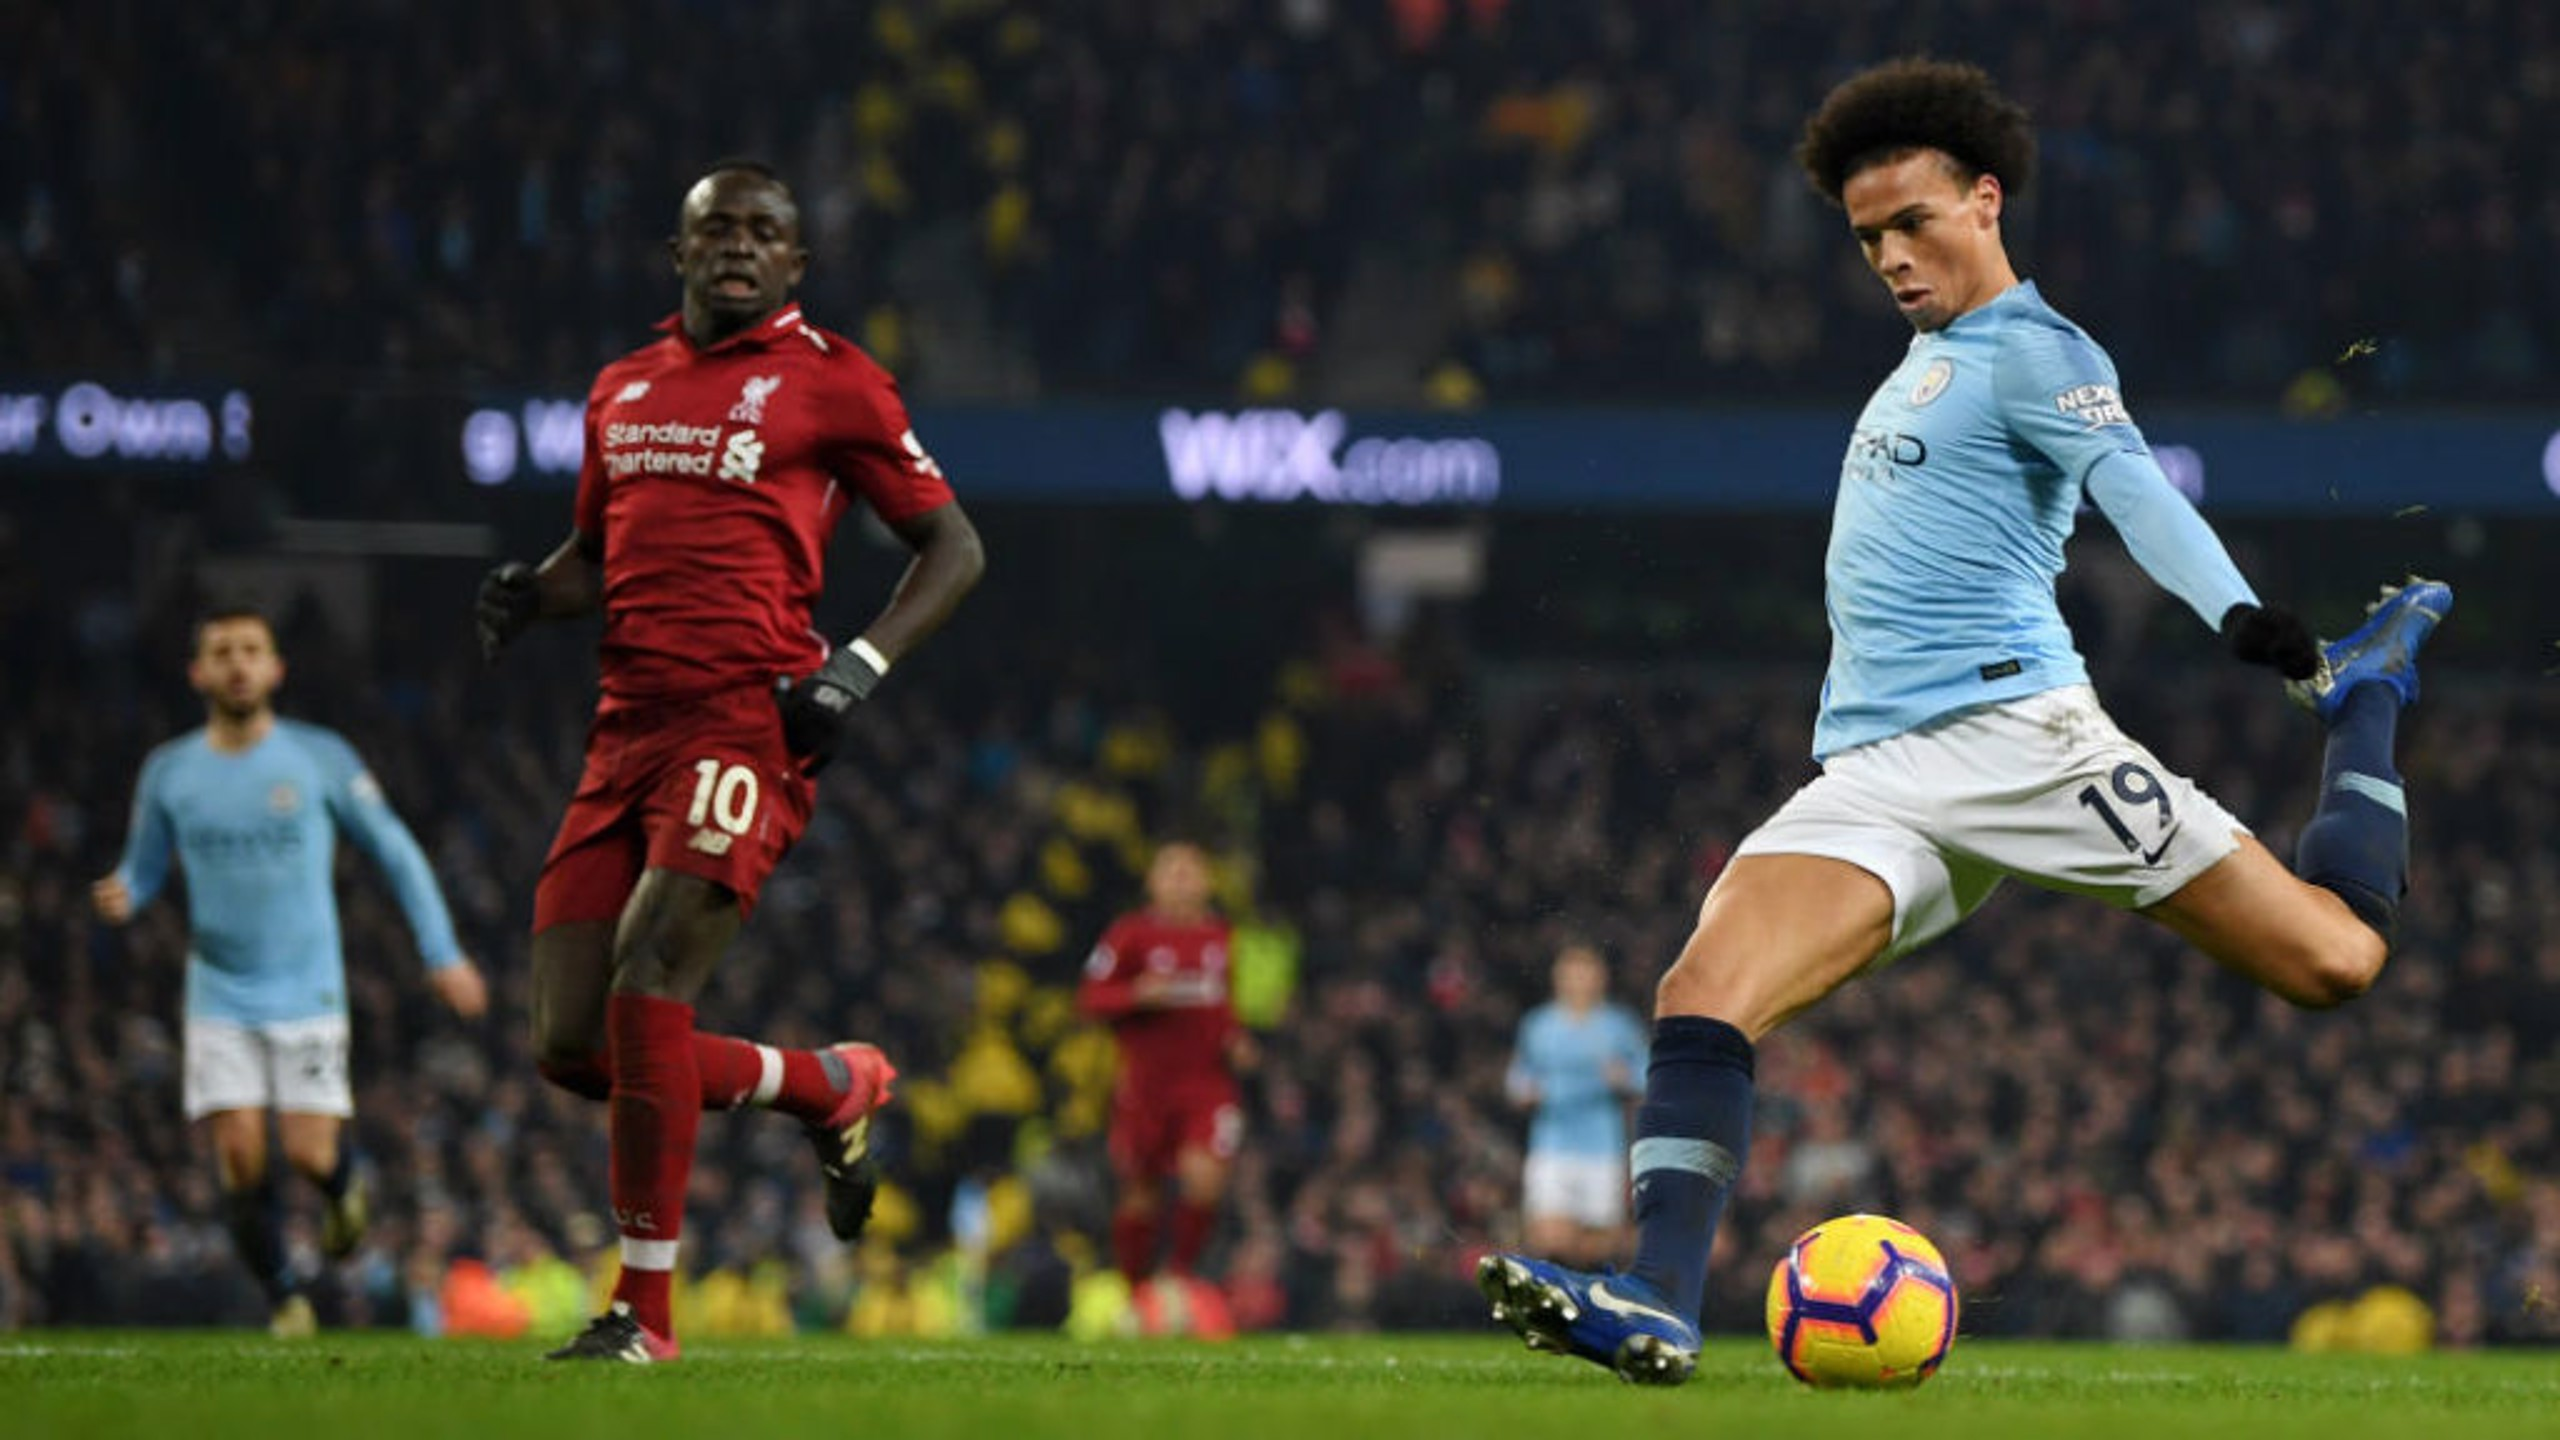 TRIGGER HAPPY: Leroy Sane fires home City's second goal